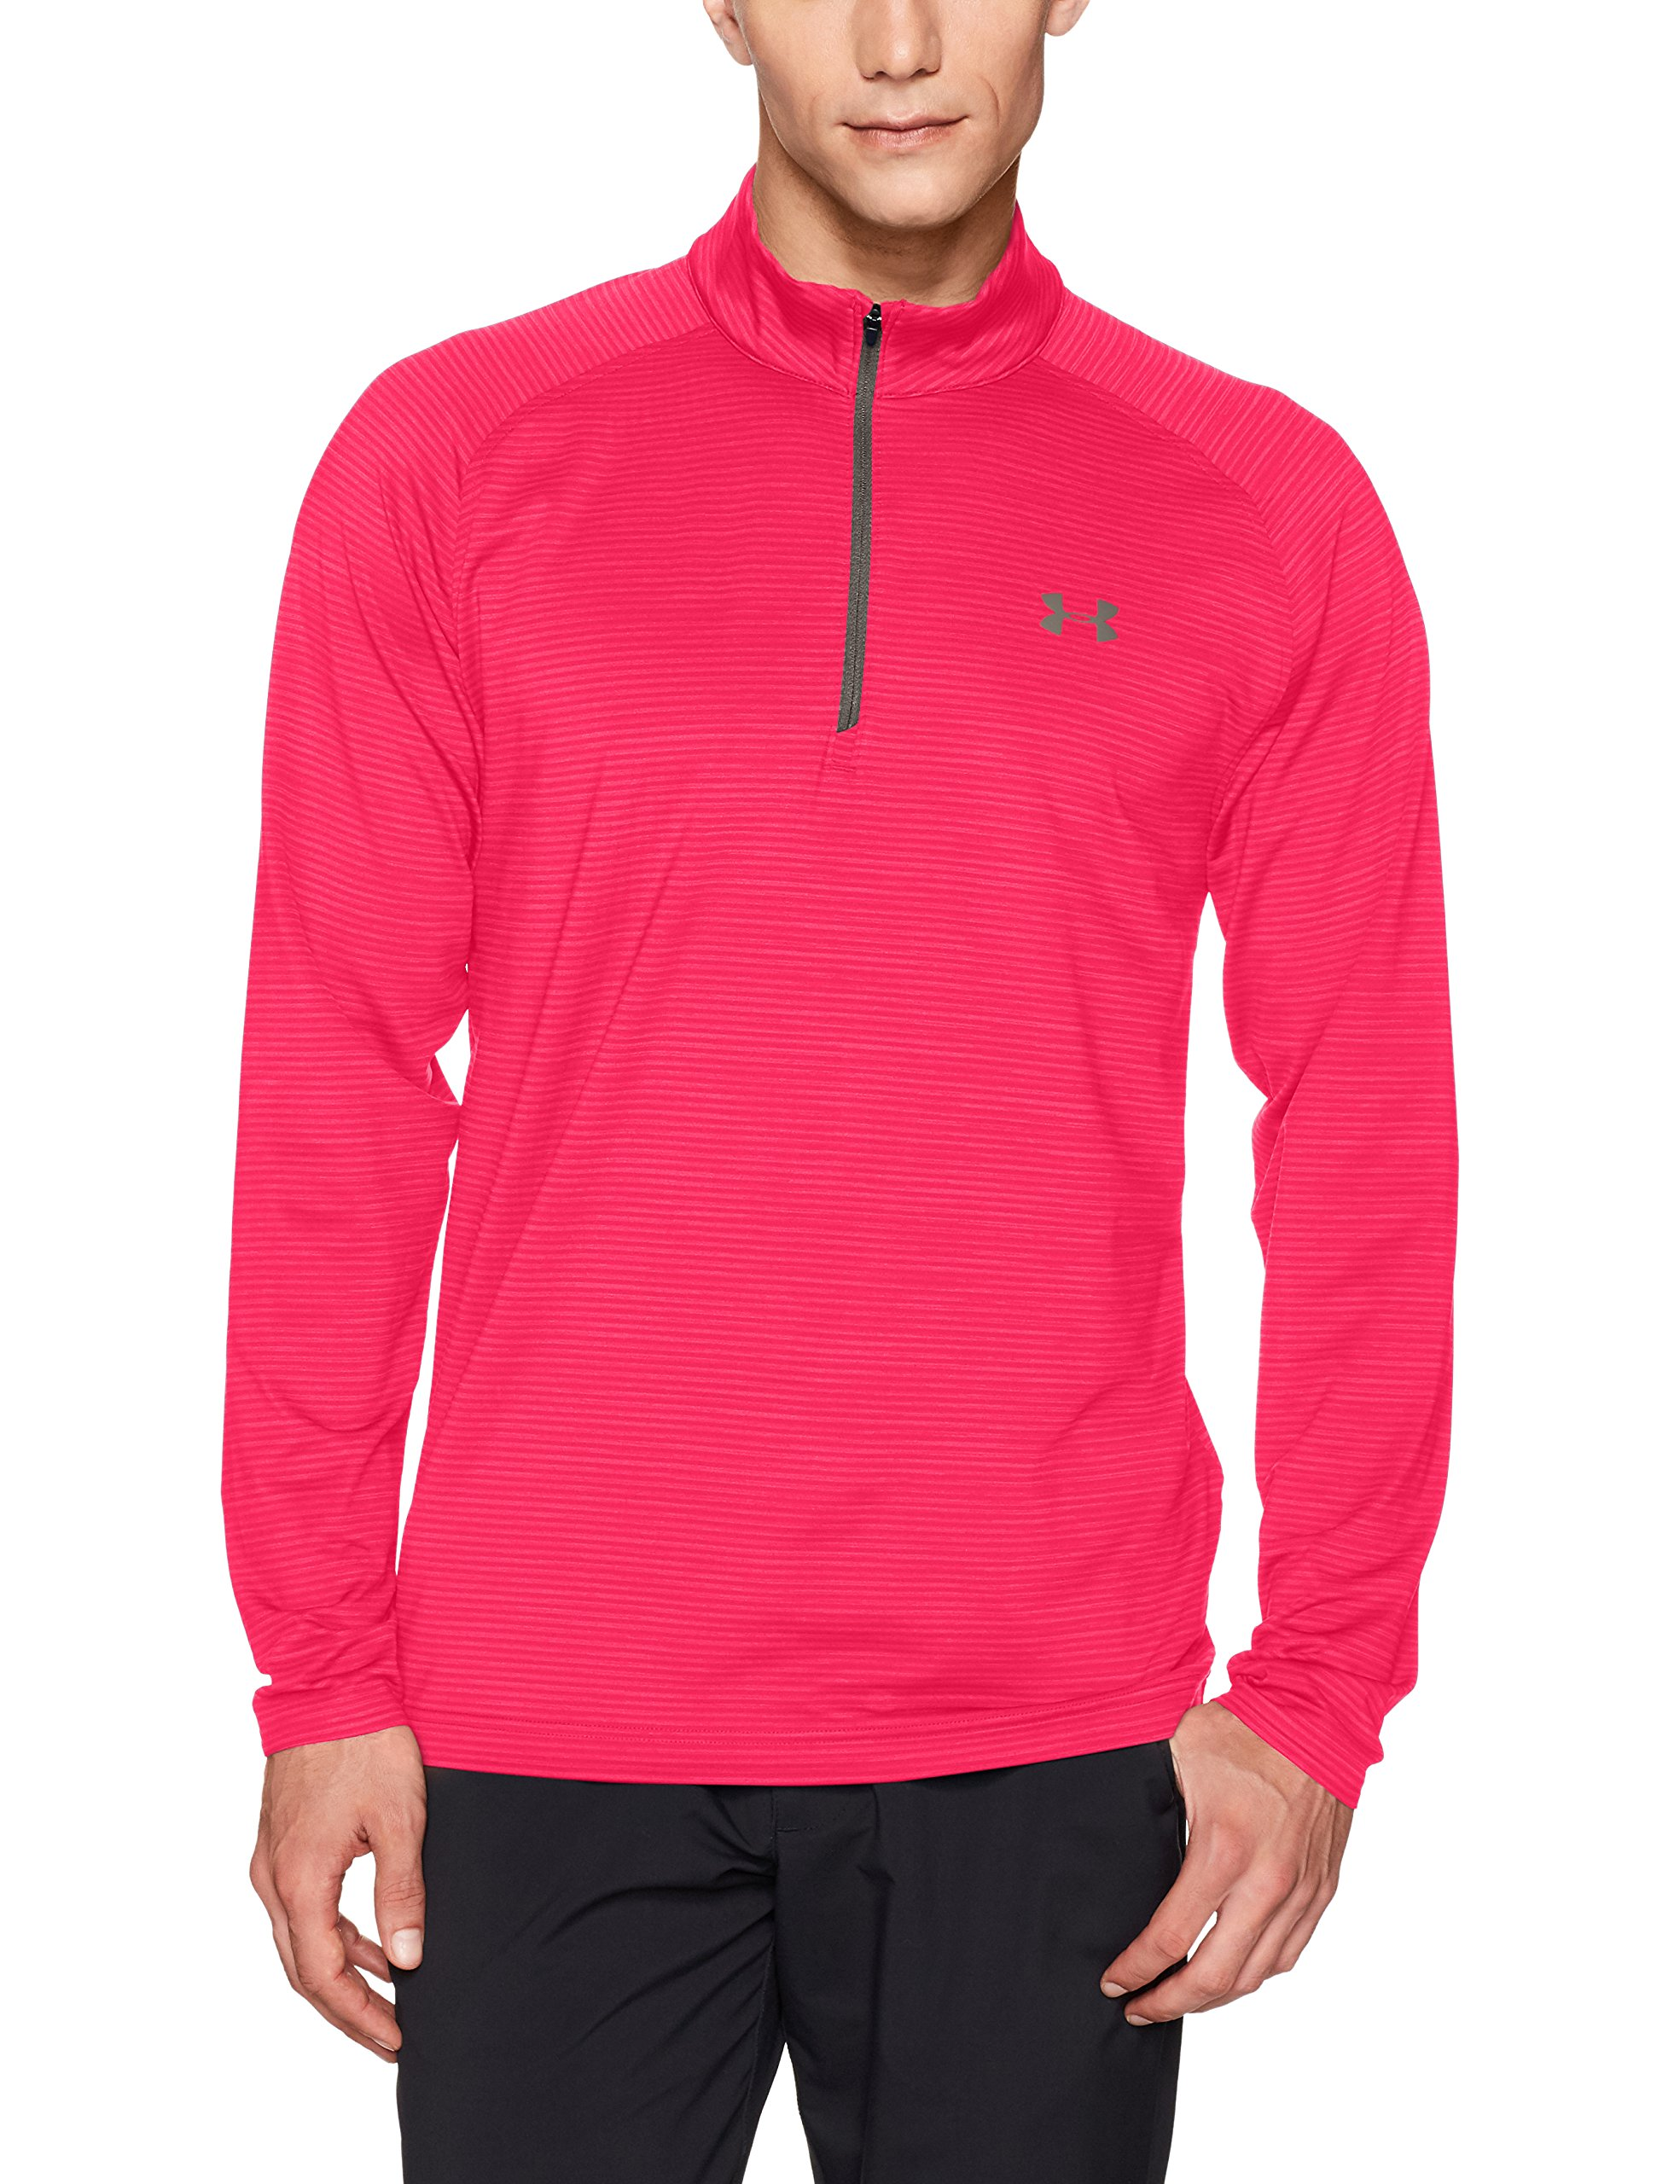 Under Armour Men's Playoff 1/4 Zip,Hollywood /Rhino Gray, Small